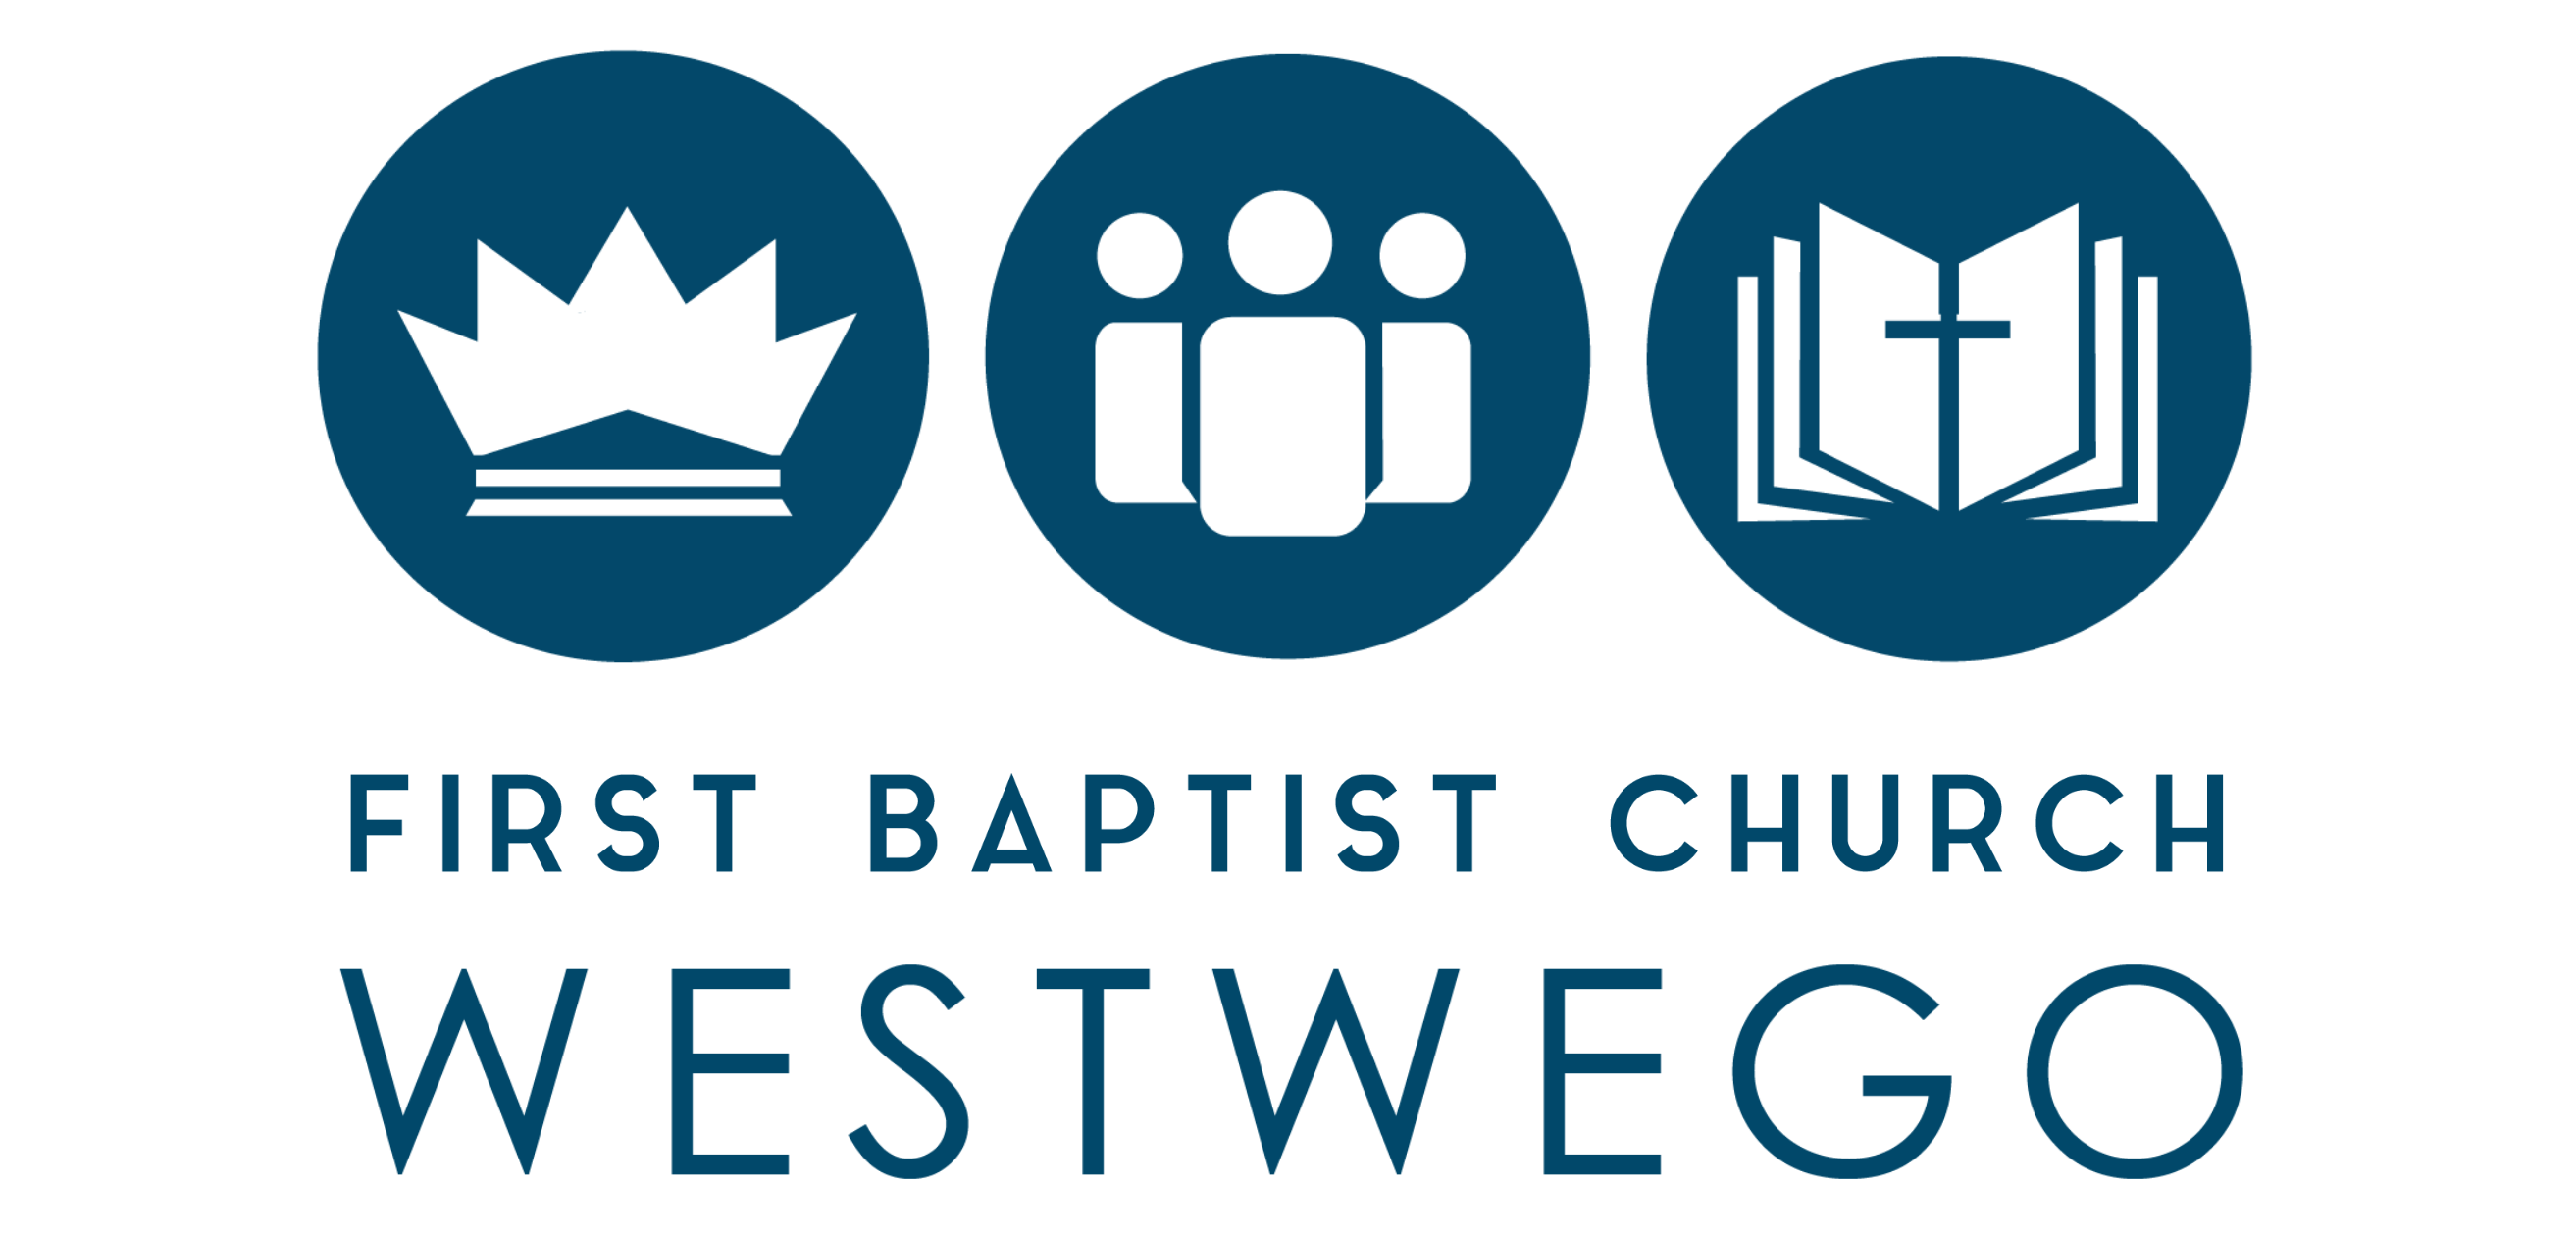 First Baptist Church - Westwego